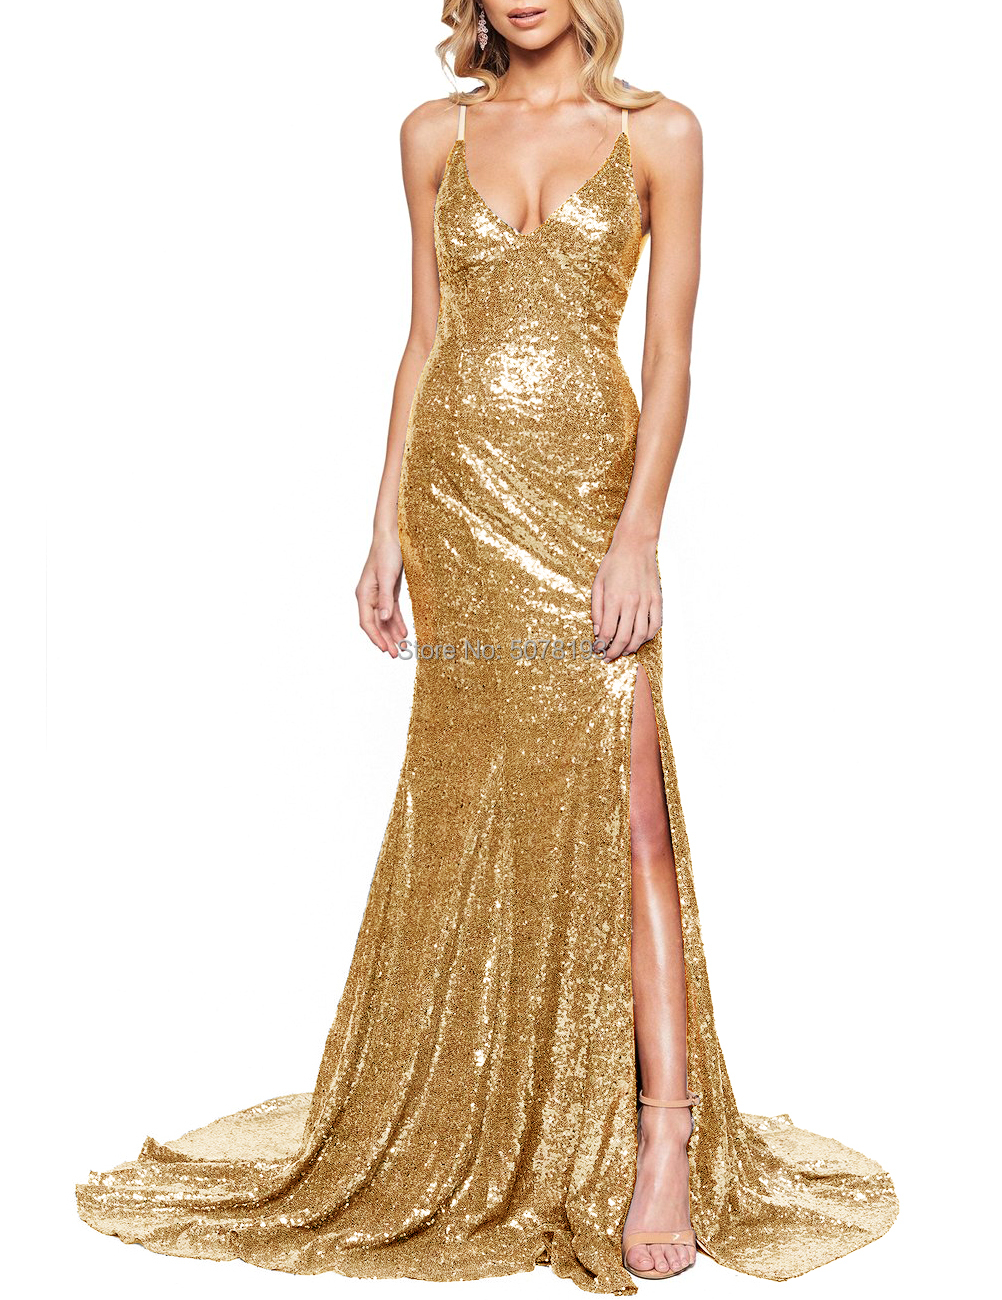 New in V-neck Spaghetti straps natural mermaid/trumpet sequins floor-length sweep trailing dress/gown slit free shipping